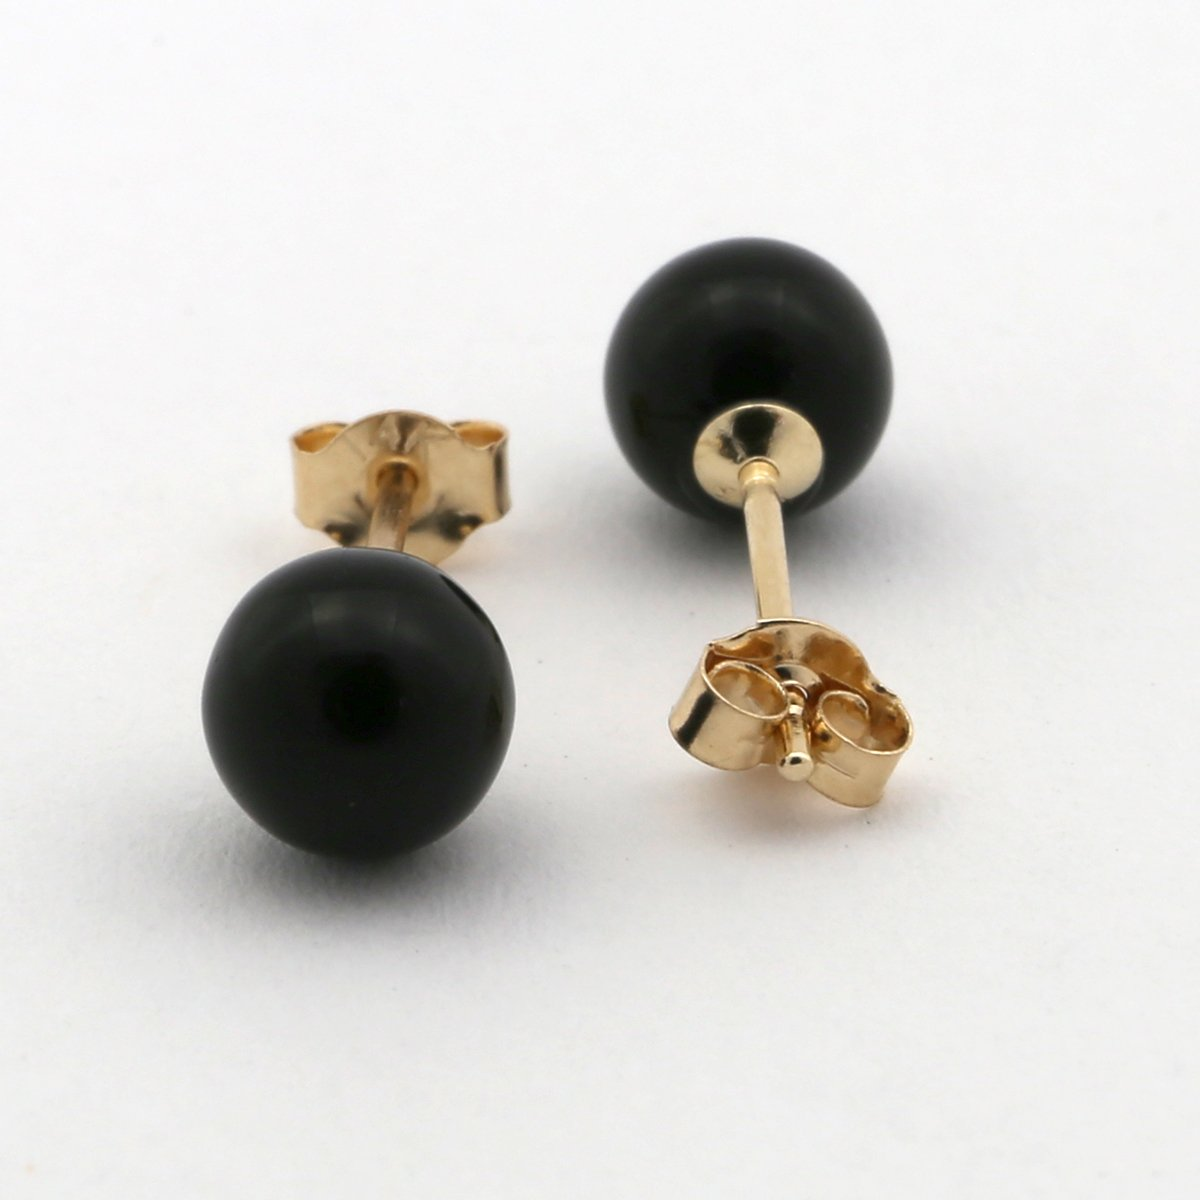 14k Yellow Gold 5 Millimeters Black Simulated Onyx Ball Stud Earrings